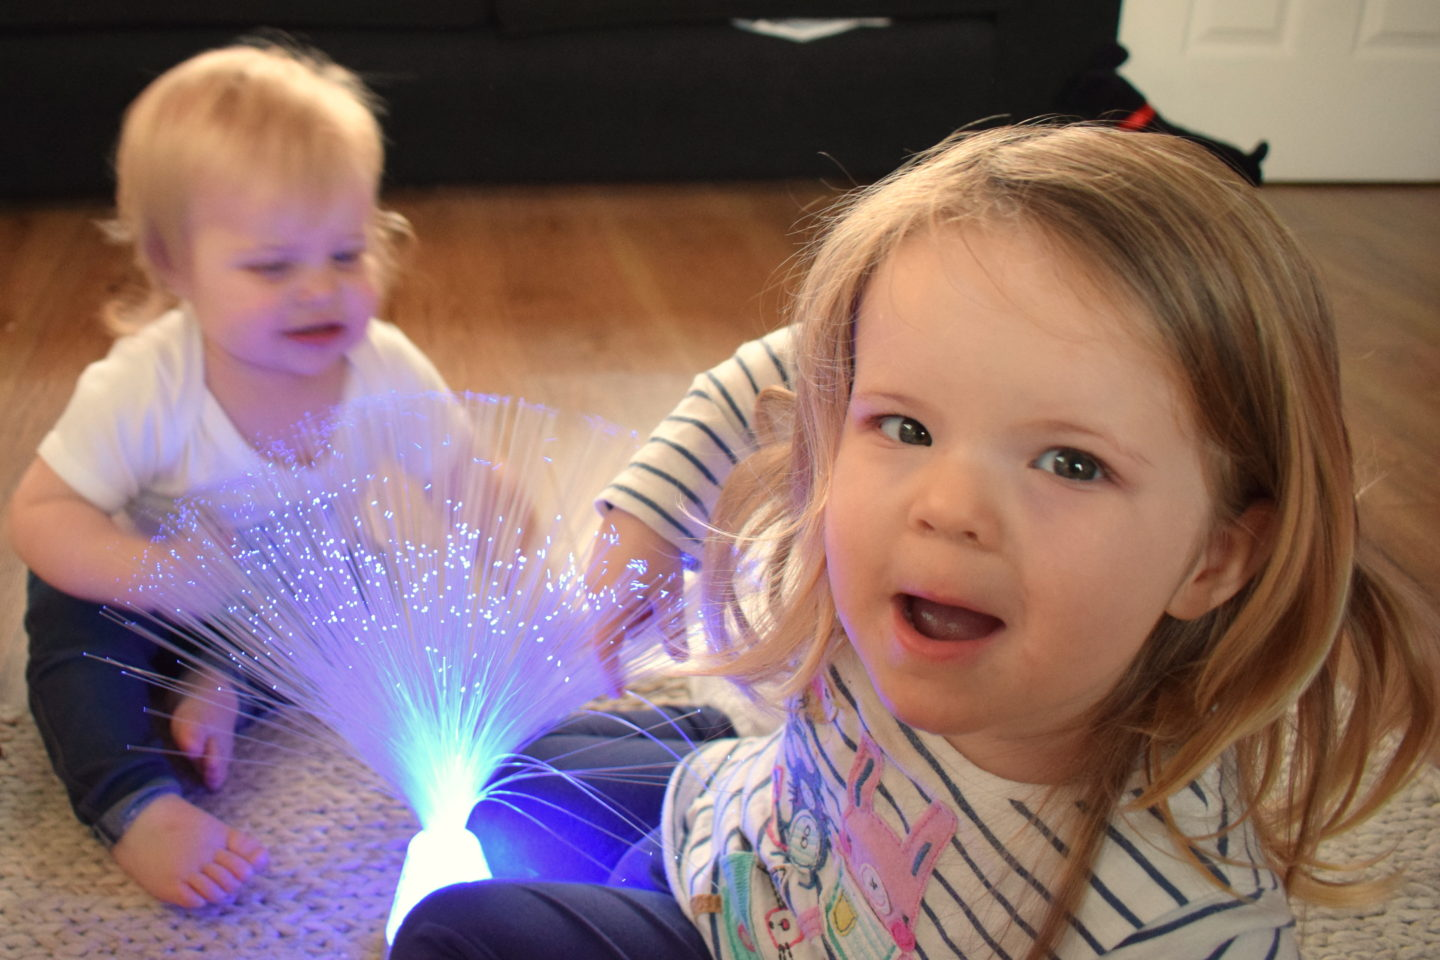 sisters playing with fibre optic lamp and laughing